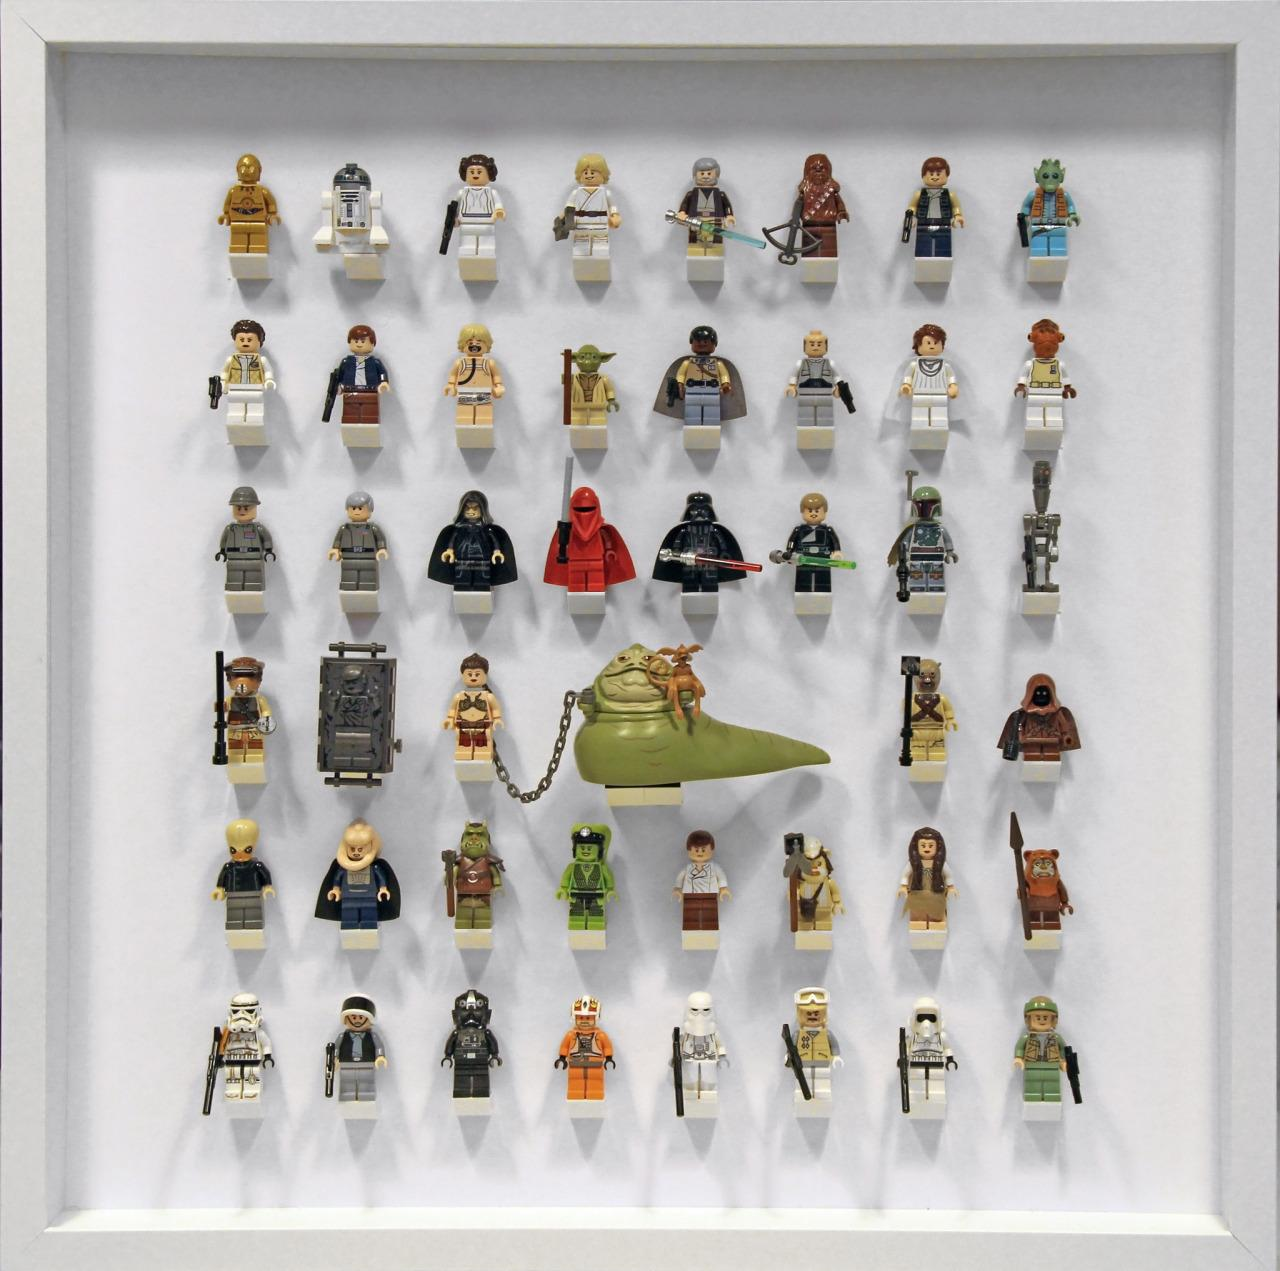 Star Wars Original Trilogy Minifigure par Brent Waller #LEGO #starwars http://t.co/jAL2FSOIP1